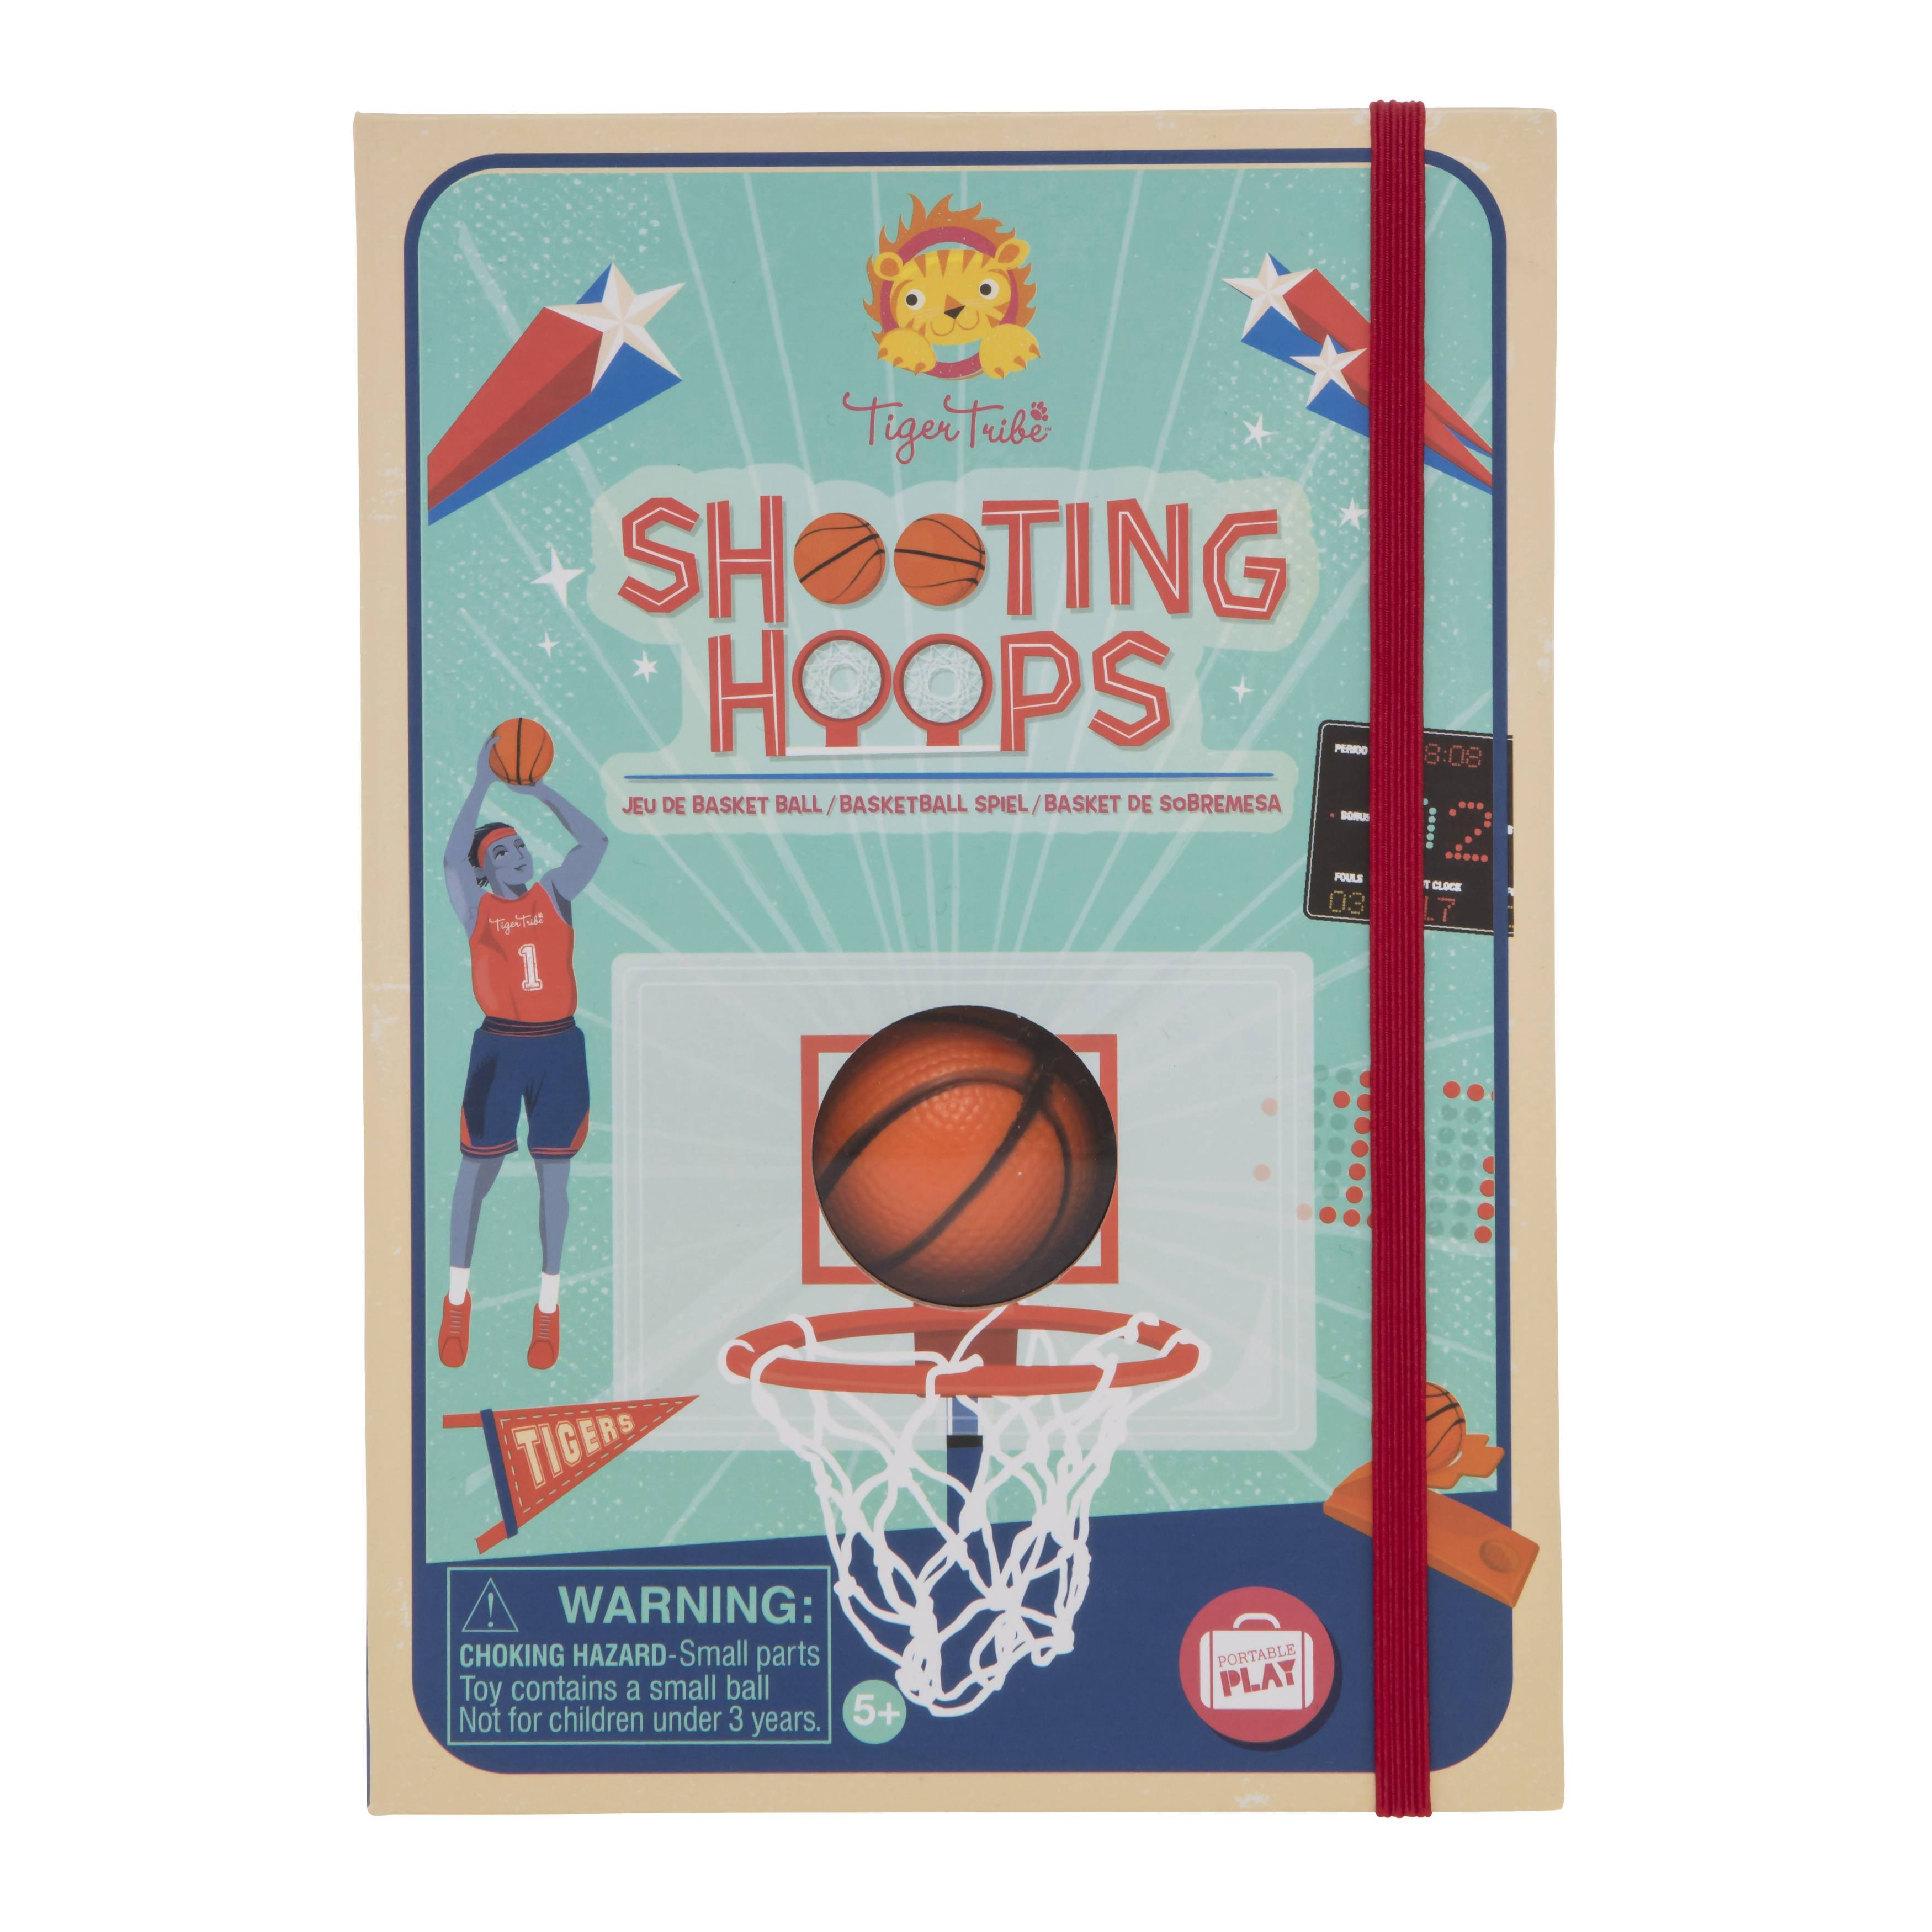 Tiger Tribe Shooting Hoops - Basketball Game - Kids Toys - The Children's Showcase - Naiise